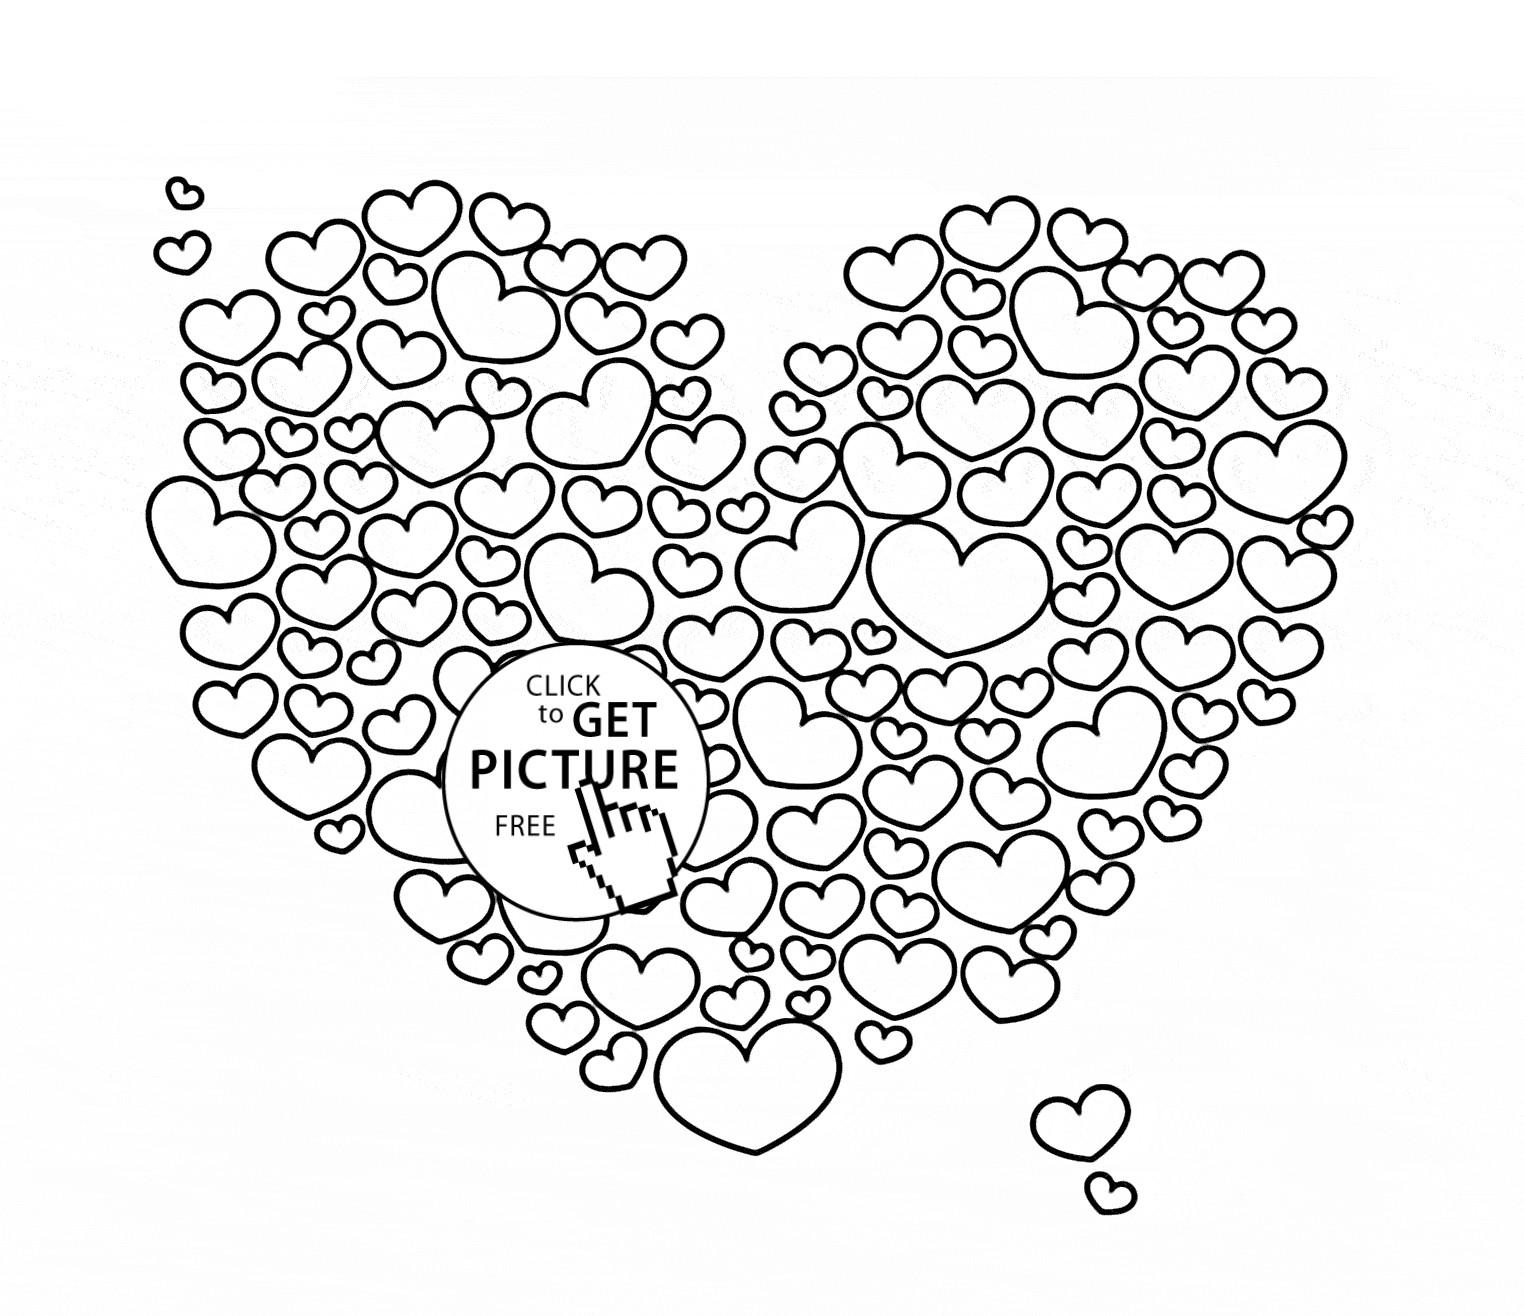 pictures of hearts to color big heart coloring pages at getcoloringscom free to color hearts pictures of